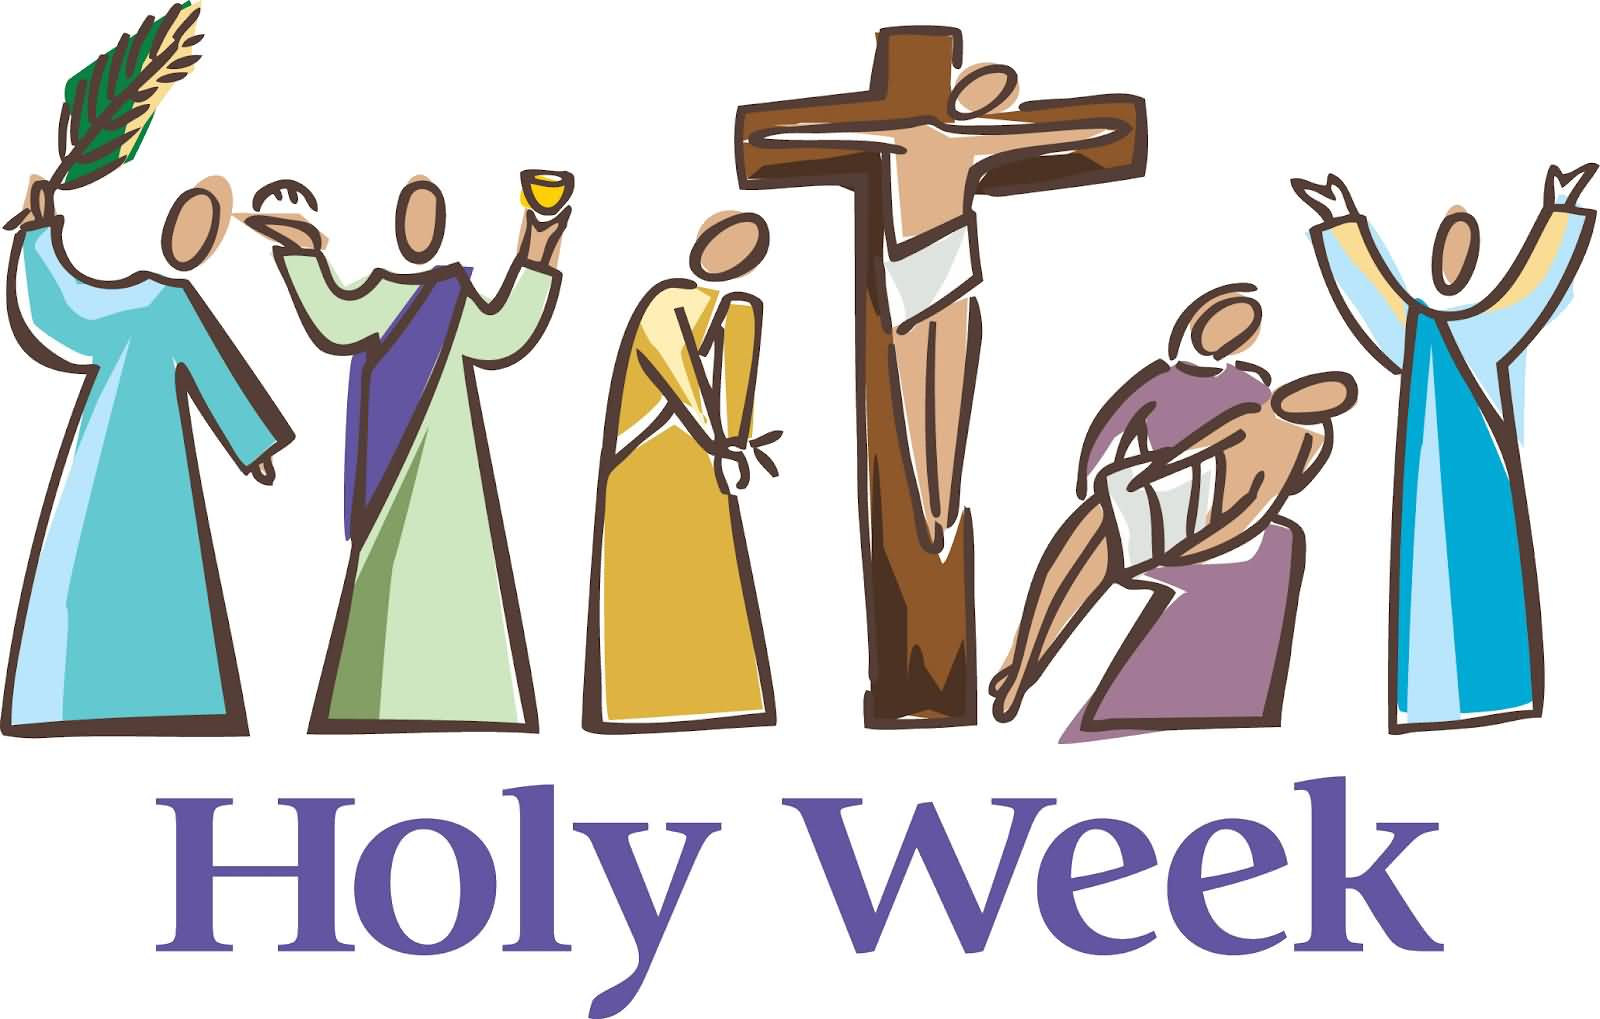 55 Most Adorable Holy Week Greeting Pictures And Photos